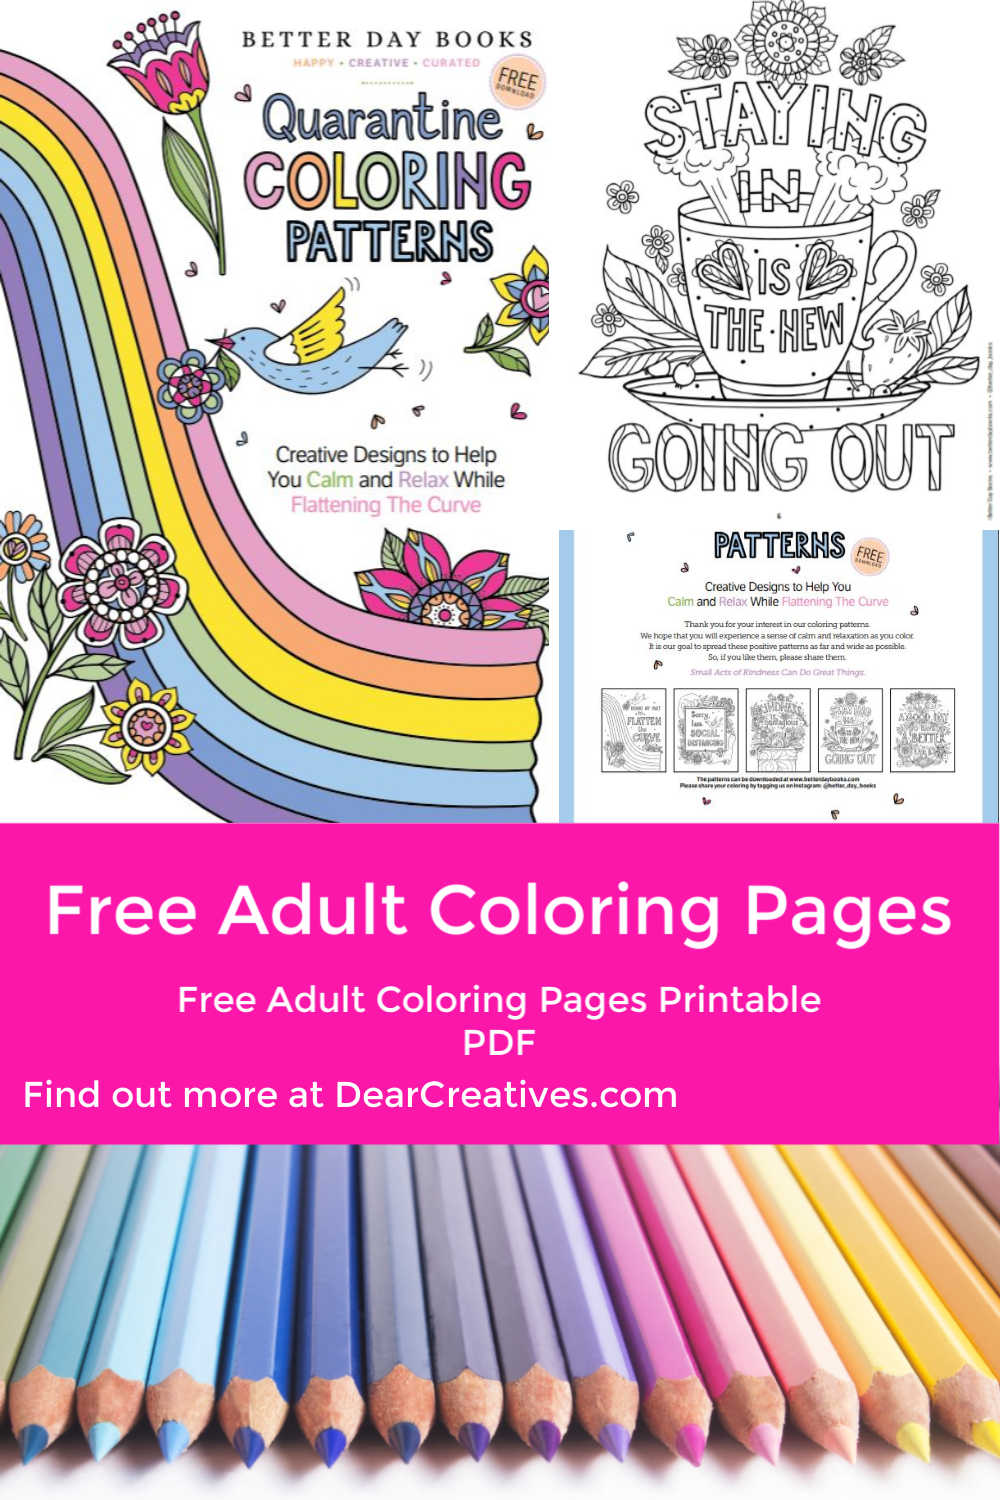 coloring pages : Free Adult Coloring Pages Pdf Art Free Pdf Adult ... | 1500x1000